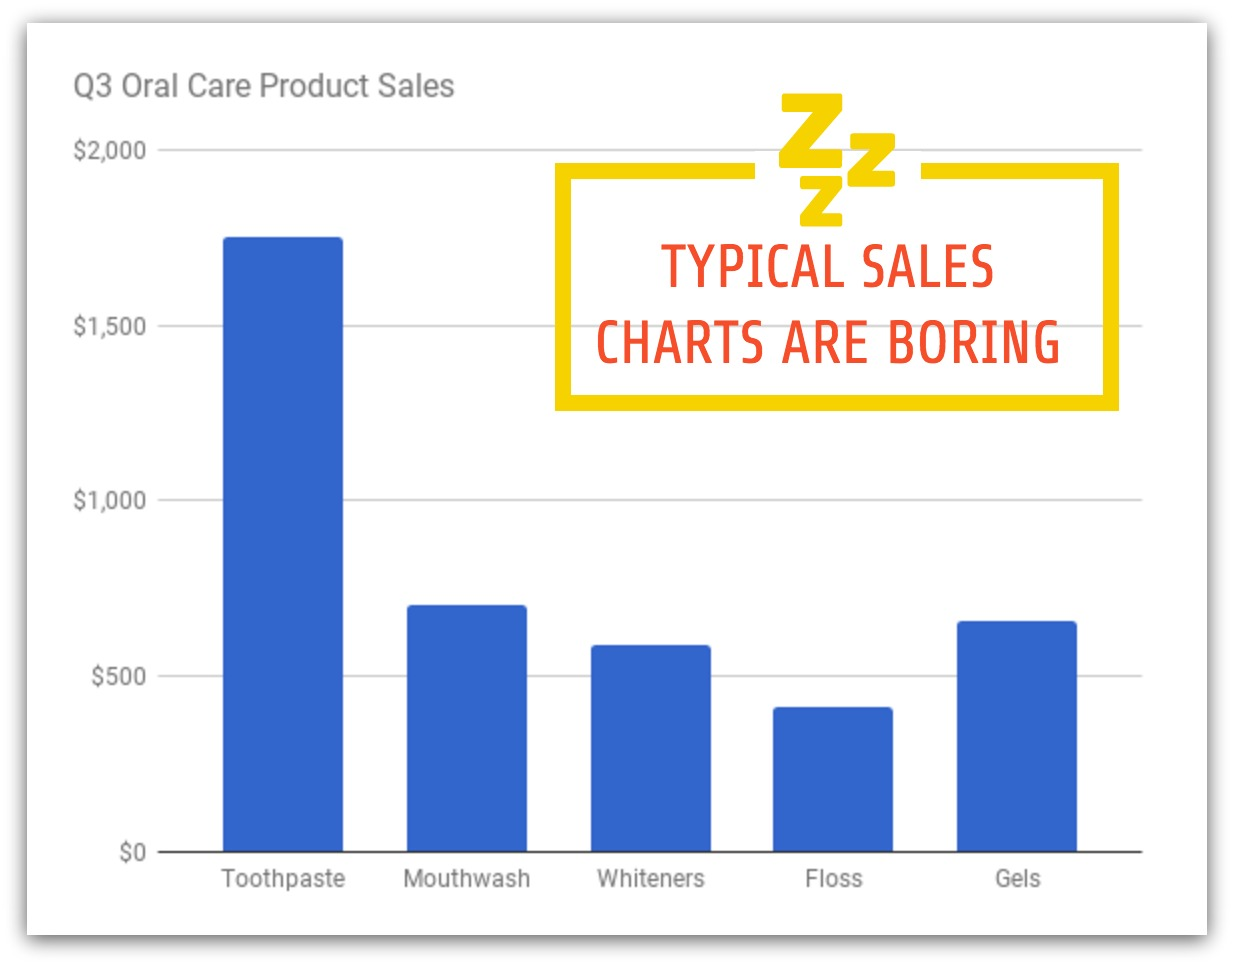 Typical Sales Charts Are Boring